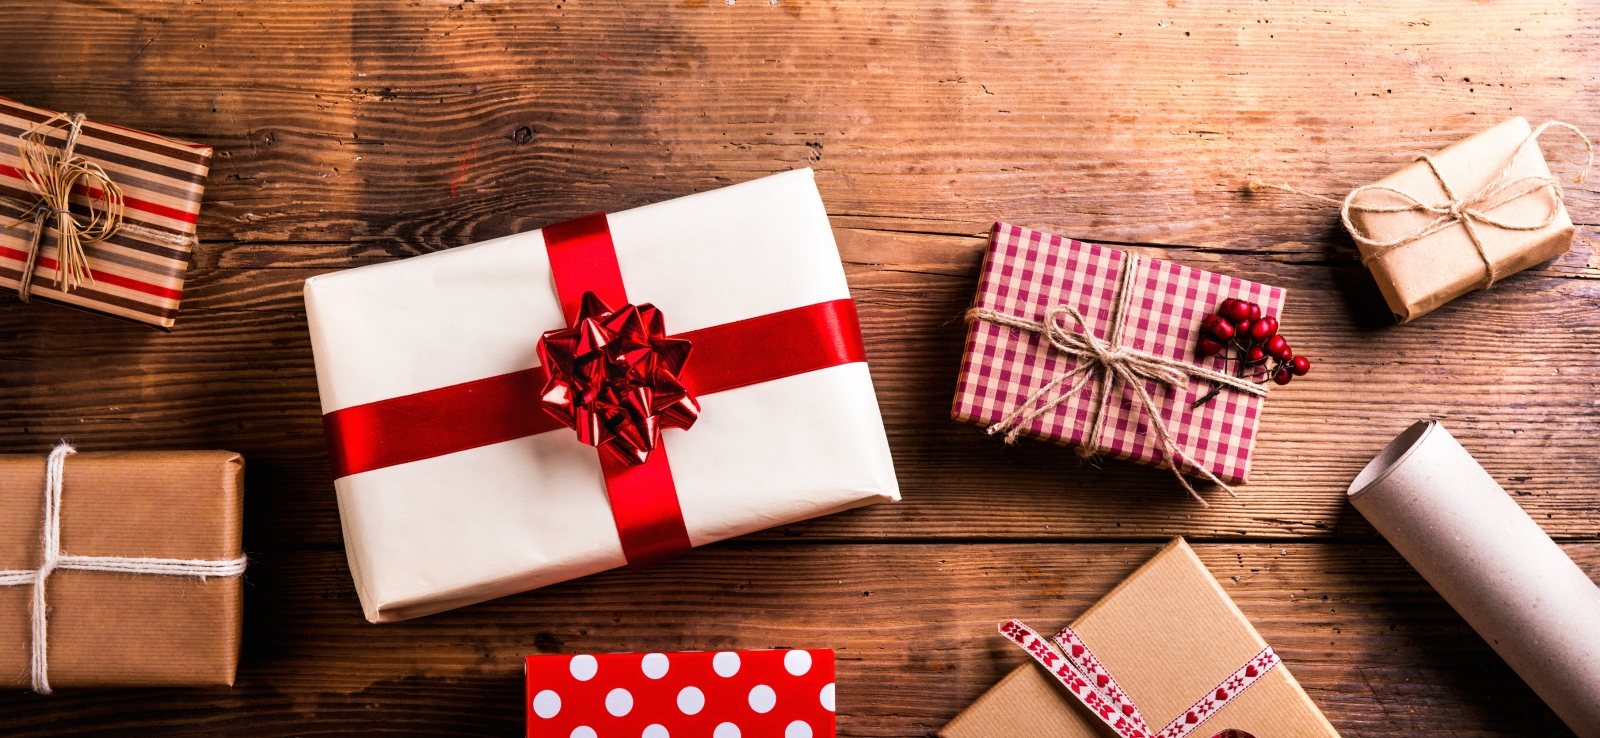 Holiday Shopping Article | Linked Retail Ecommerce Consulting Services